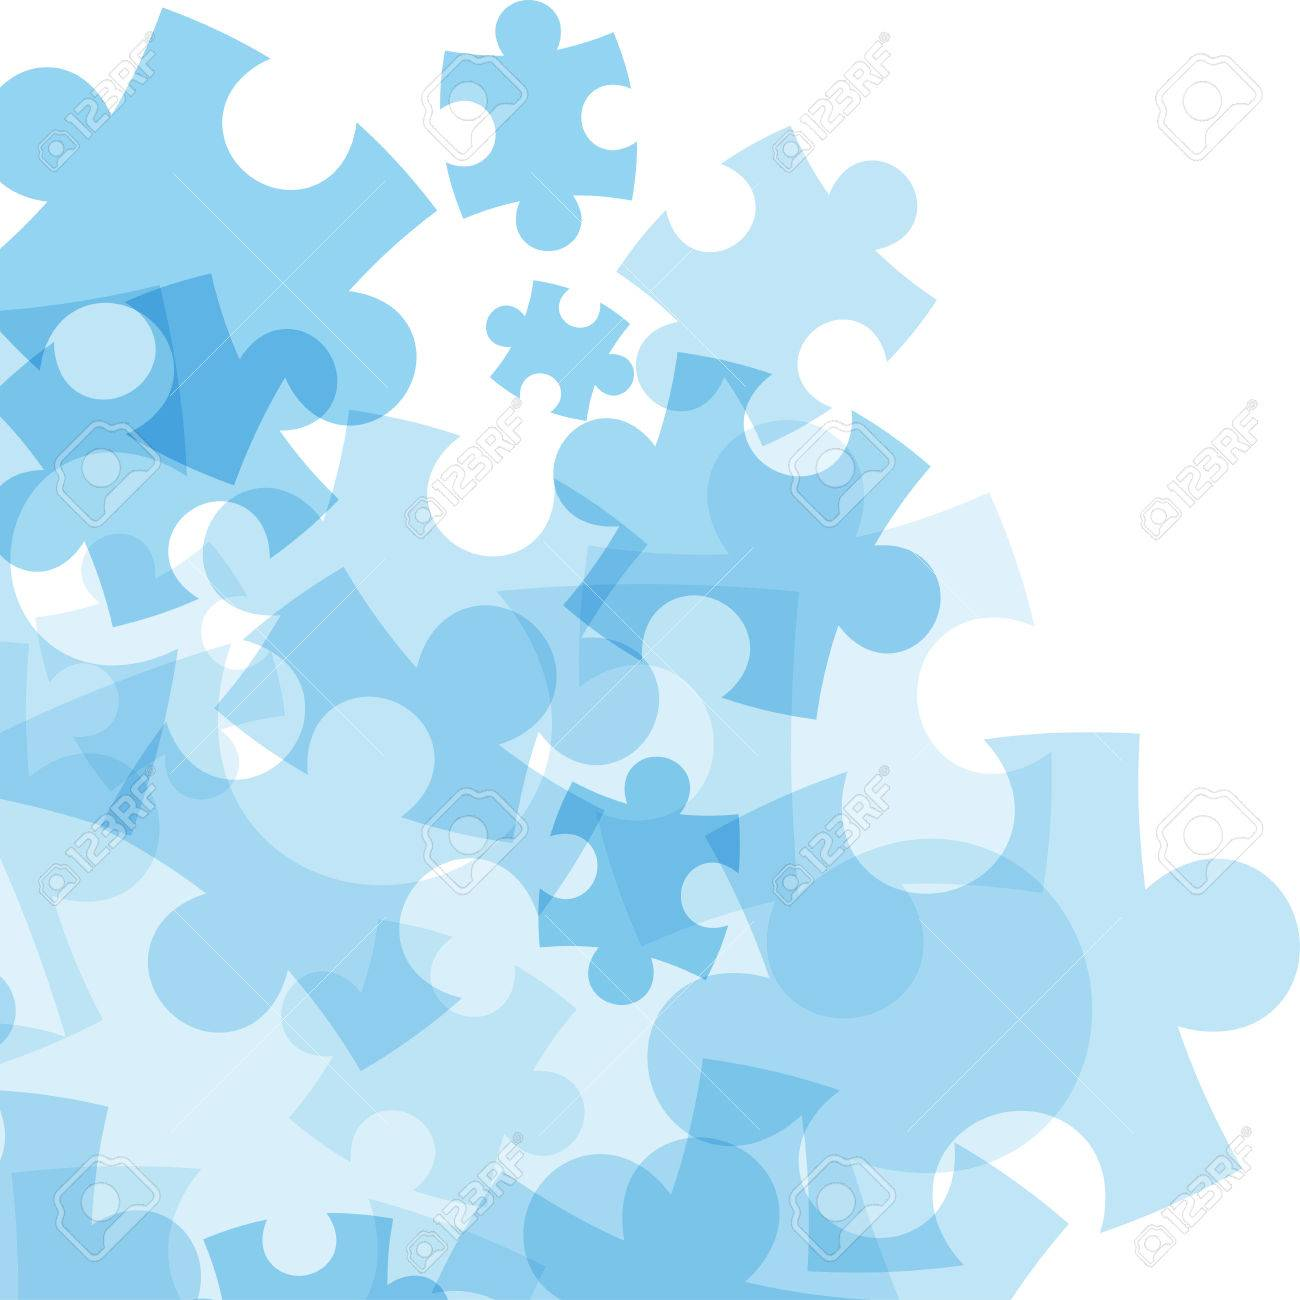 Abstract monocolor puzzle background  Vector graphic template